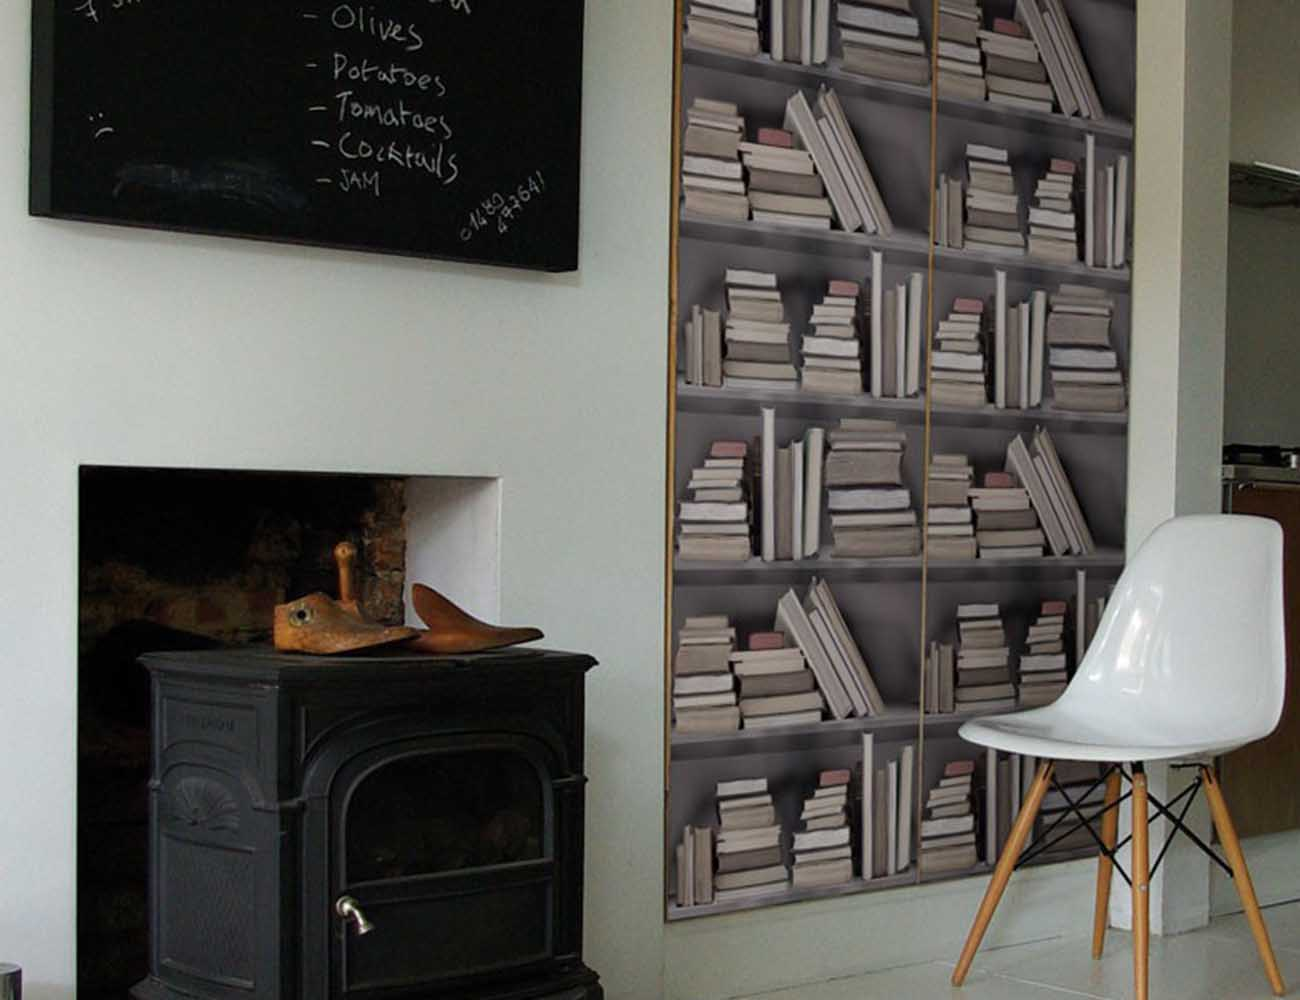 p rustic contemporary walls republic bookshelf wallpaper vintage